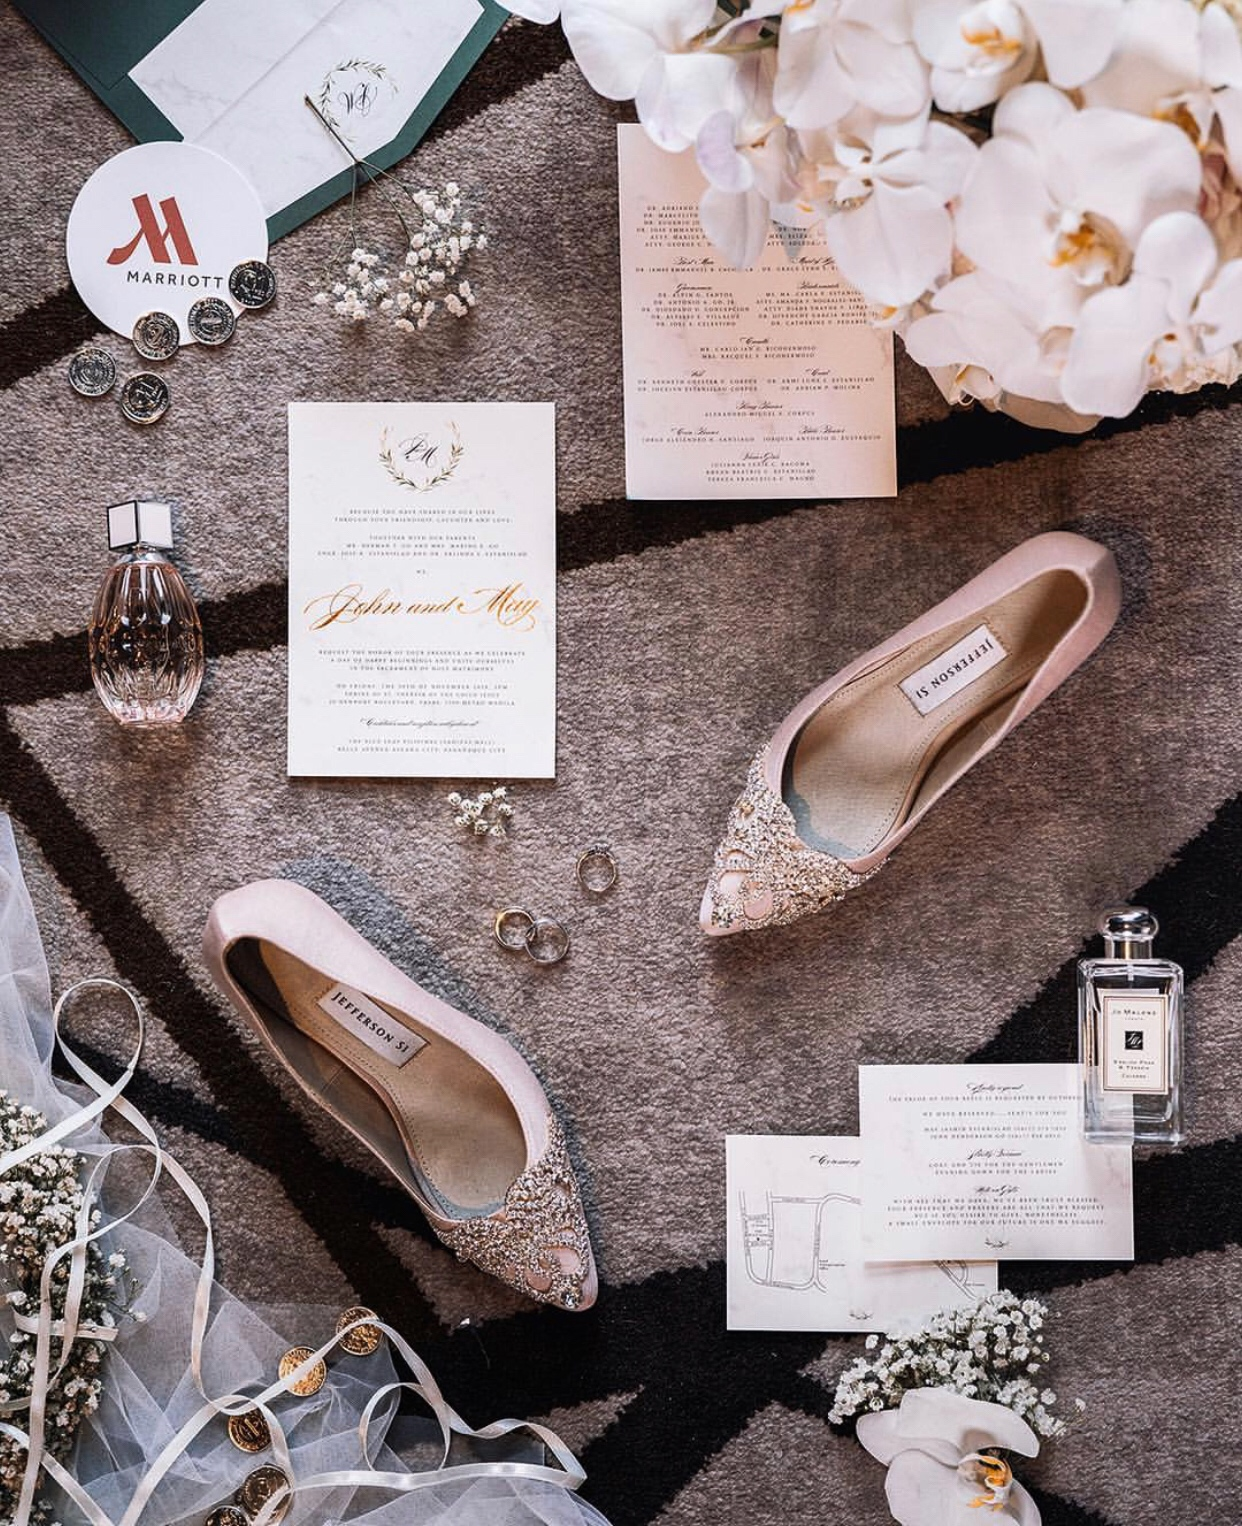 """Love you too Jeff 😘 Thank you again for the perfect wedding shoes! They gave me that extra boost of confidence and glamour on the big day not to mention the comfort during the biggest walk of my life!  My mom said her shoes got mistaken for the bridal shoes. That's how fabulous your creations are! Stay kind and sweet. You've accomplished so much already but I know you're still destined for more and no doubt you'll achieve them all. God bless you always."""